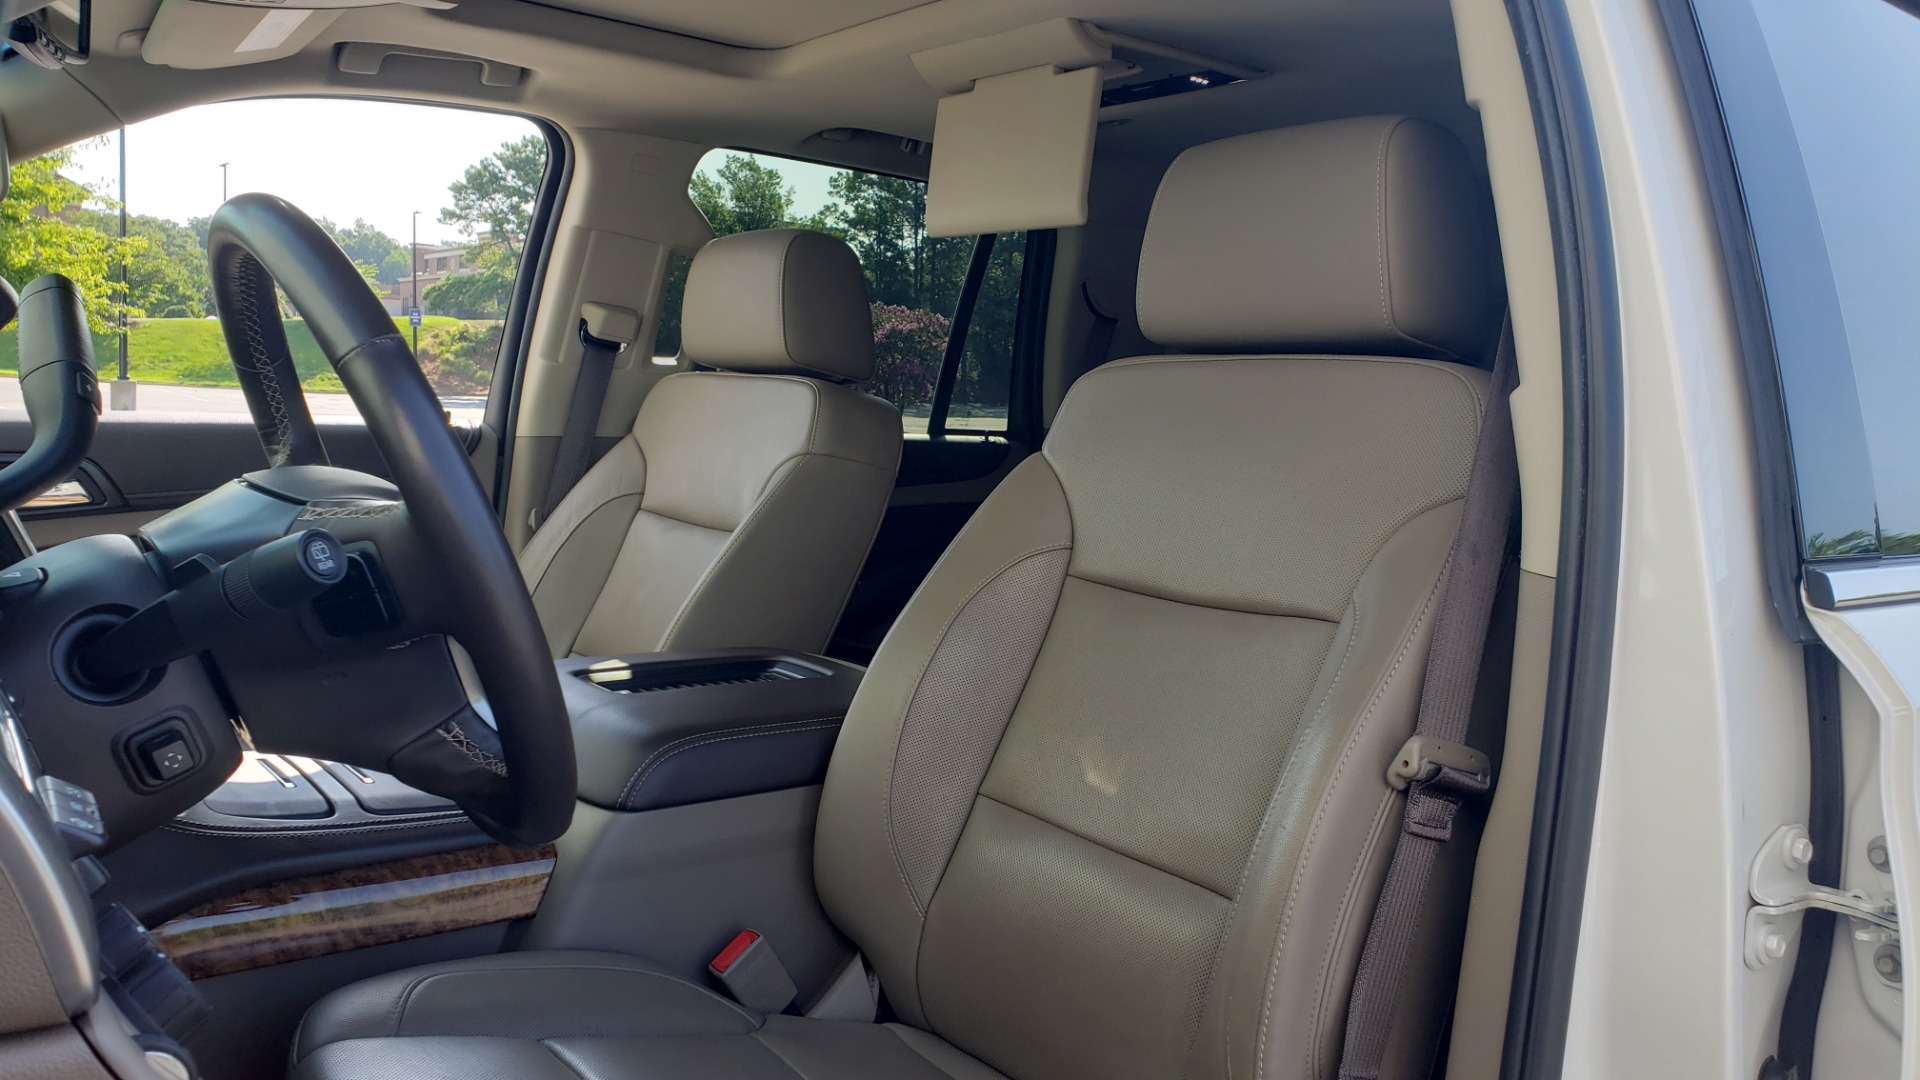 Used 2018 Chevrolet TAHOE PREMIER 4X4 / NAV / BOSE / SUNROOF / ENT SYS / 3-ROW / REARVIEW for sale $55,995 at Formula Imports in Charlotte NC 28227 44